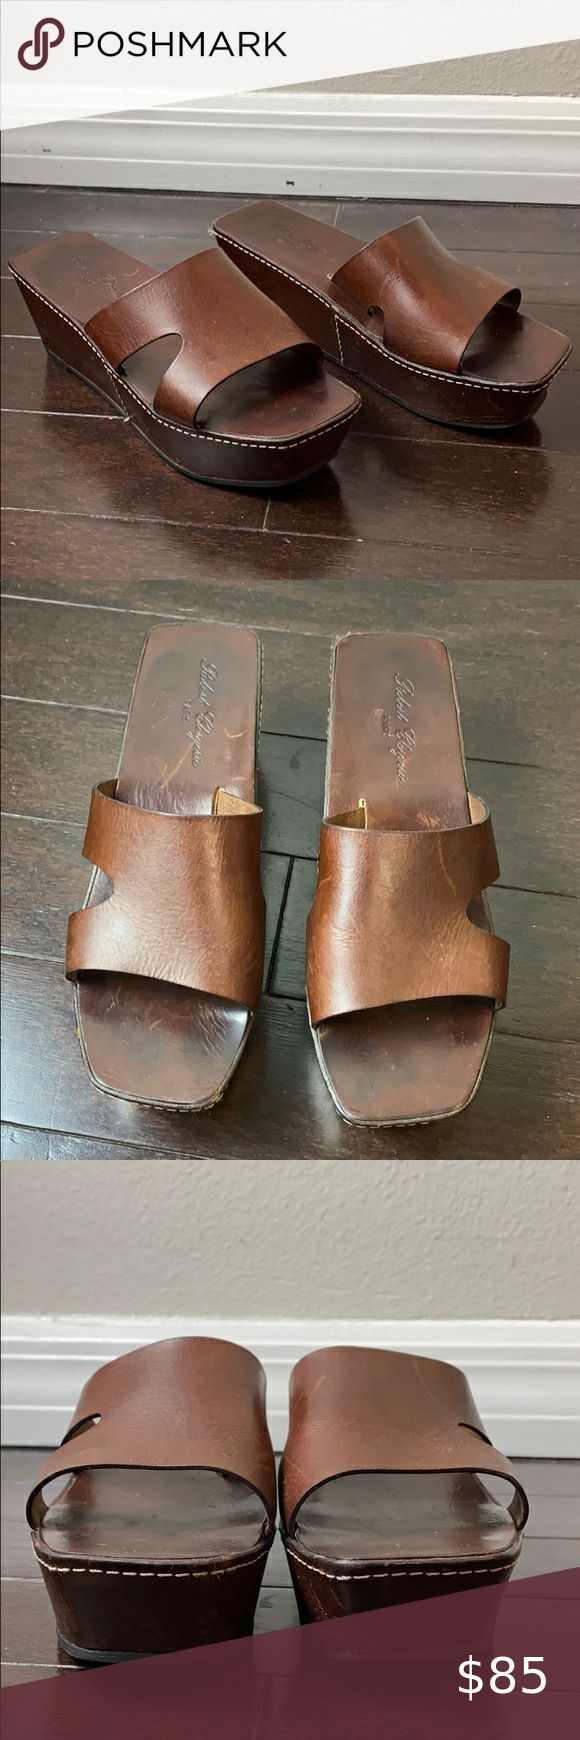 Robert Clergerie Leather Platform Wedge Sandals Great condition 1.5 platform, 2.5 wedge heel Robert Clergerie Shoes Sandals